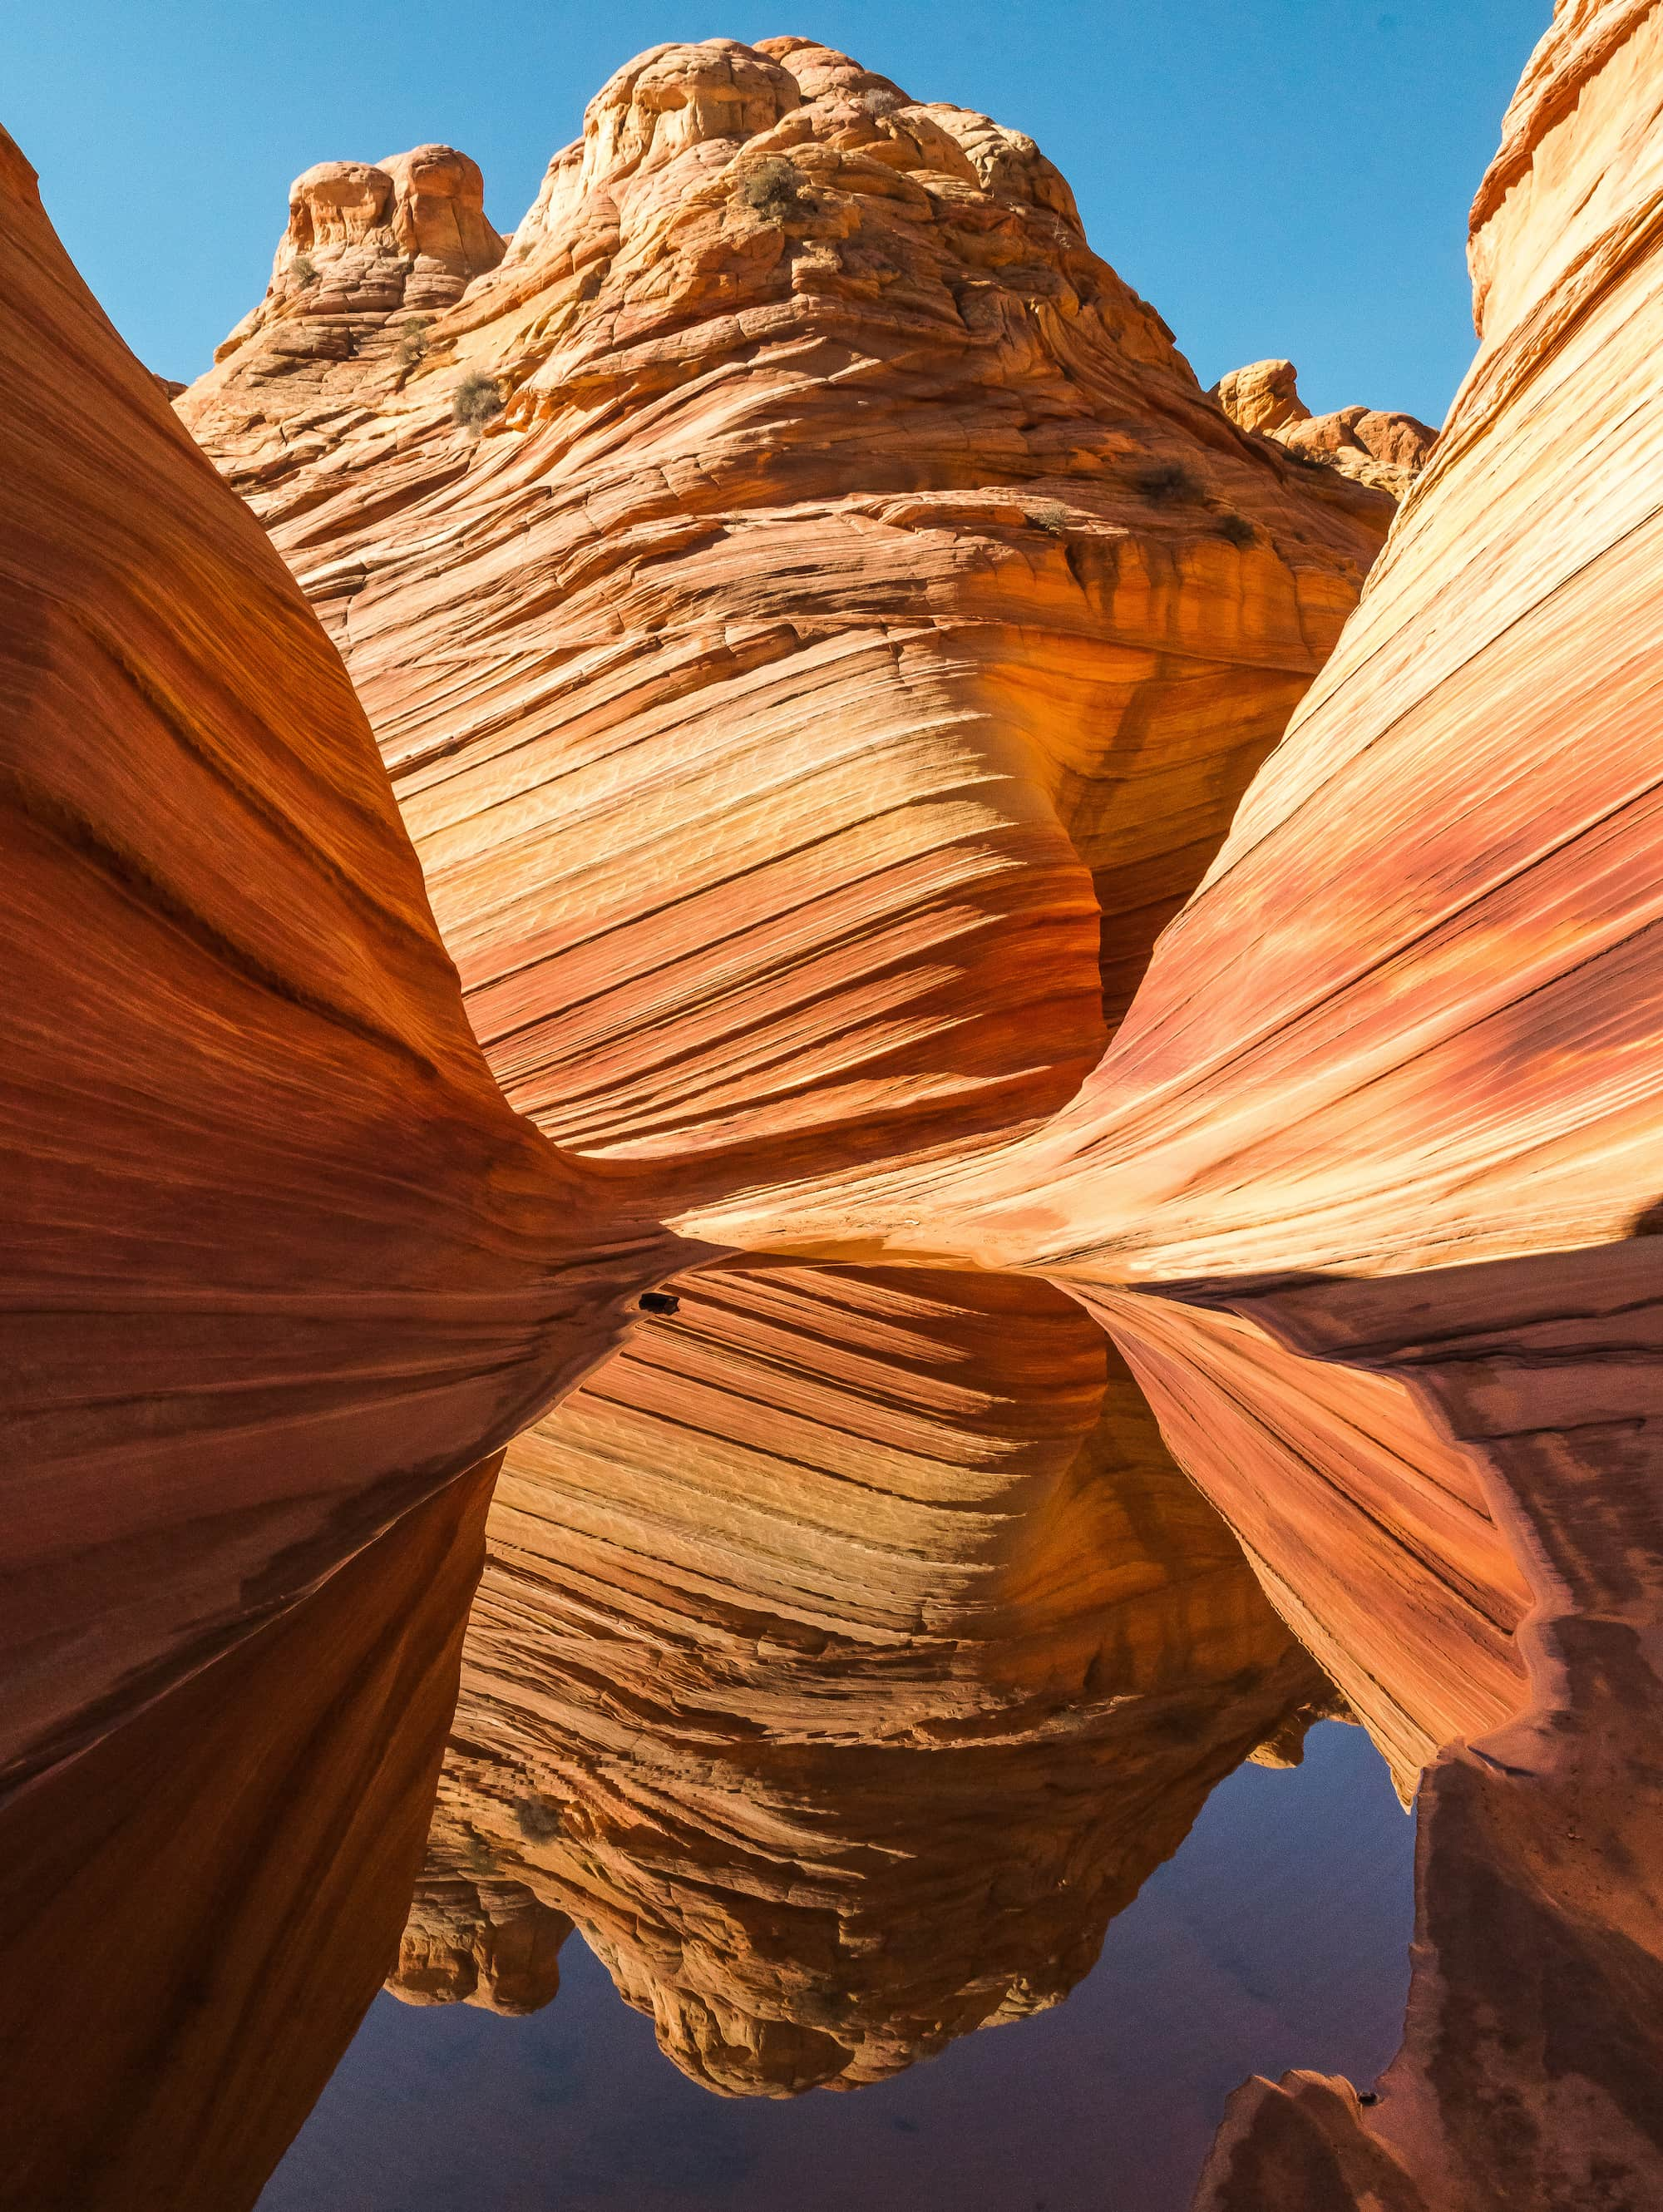 The Wave // A round-up of the best hikes in Utah. Explore Utah's epic landscapes and get tips for tackling these bucketlist trails.